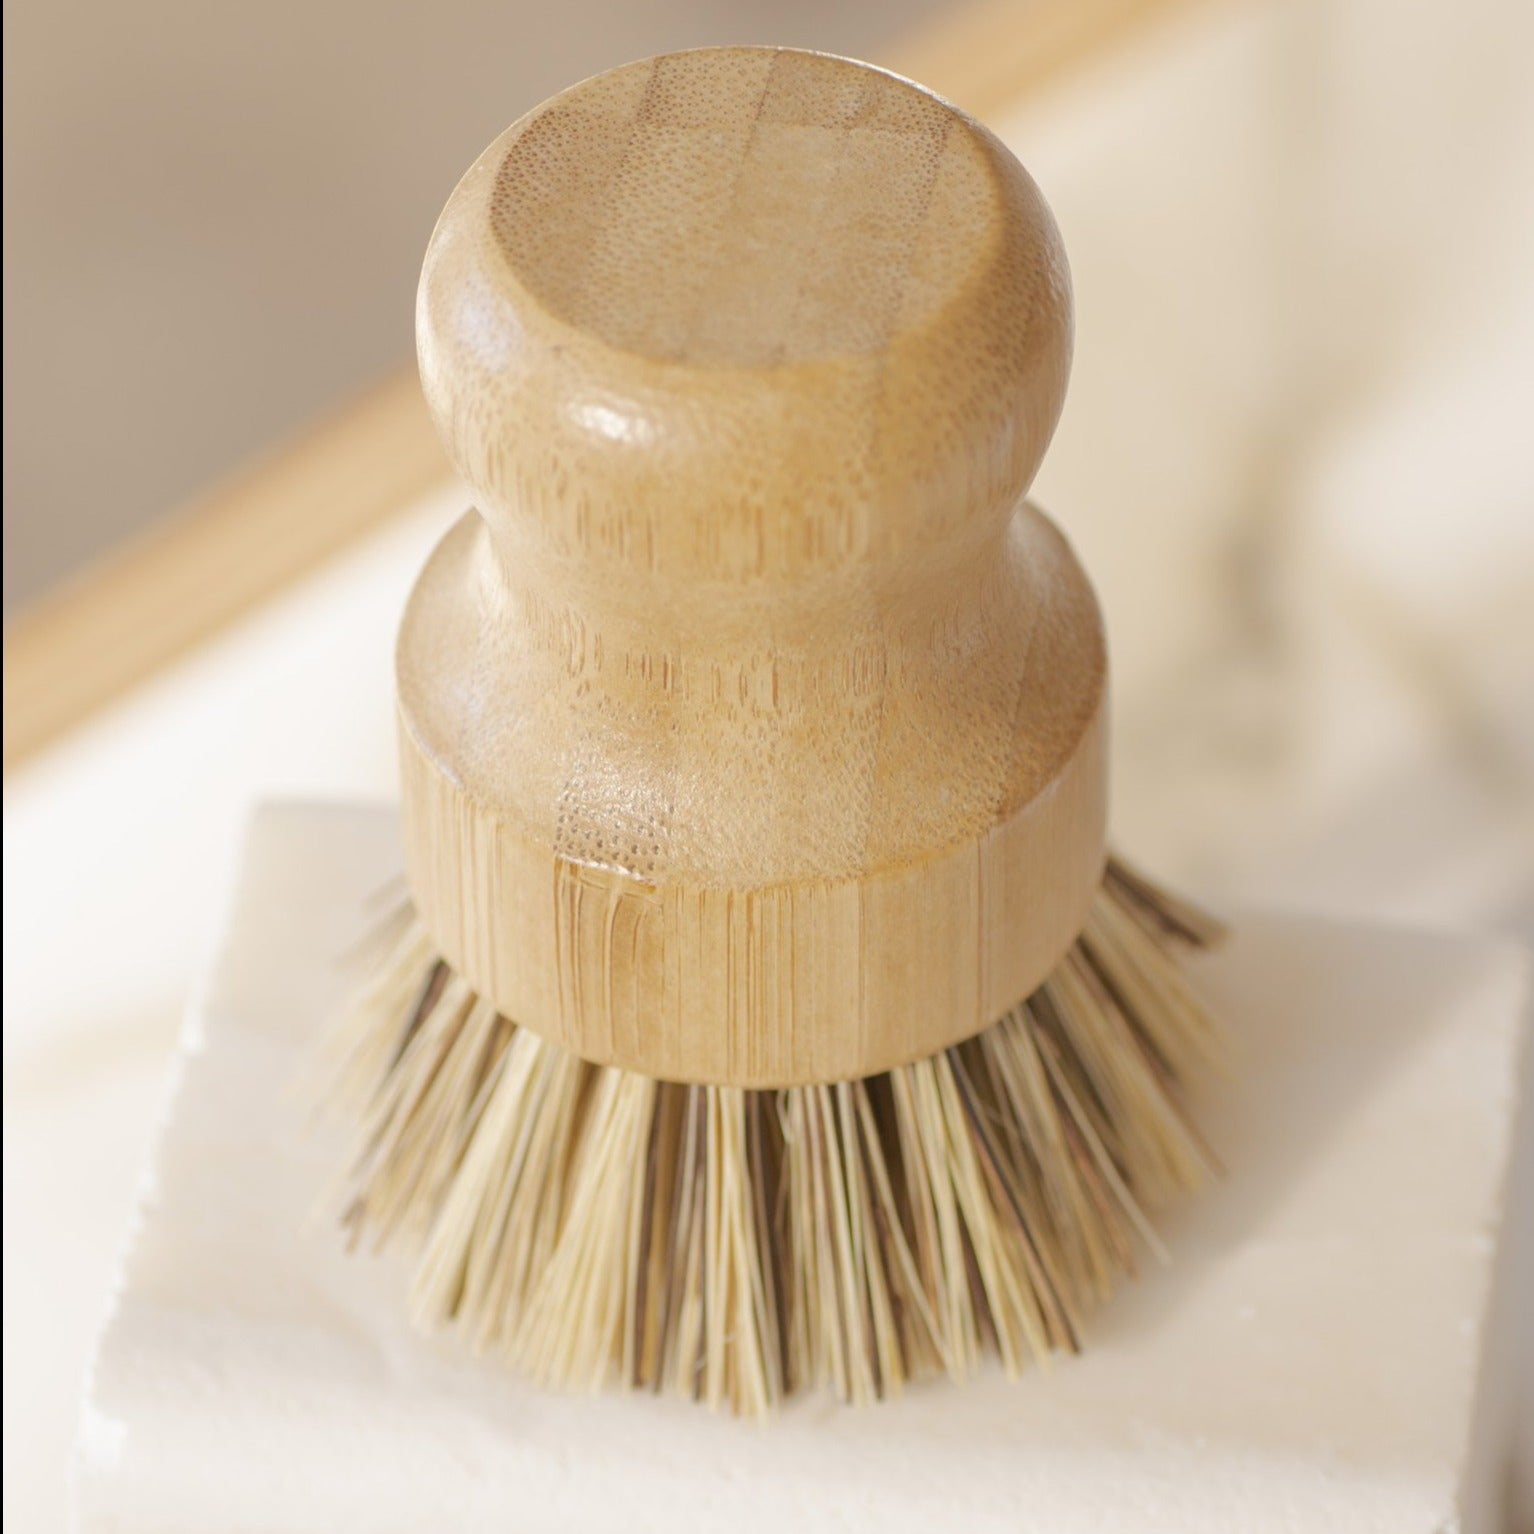 No Tox Life - Casa Agave Pot Scrubbing Brush All Things Being Eco Chilliwack